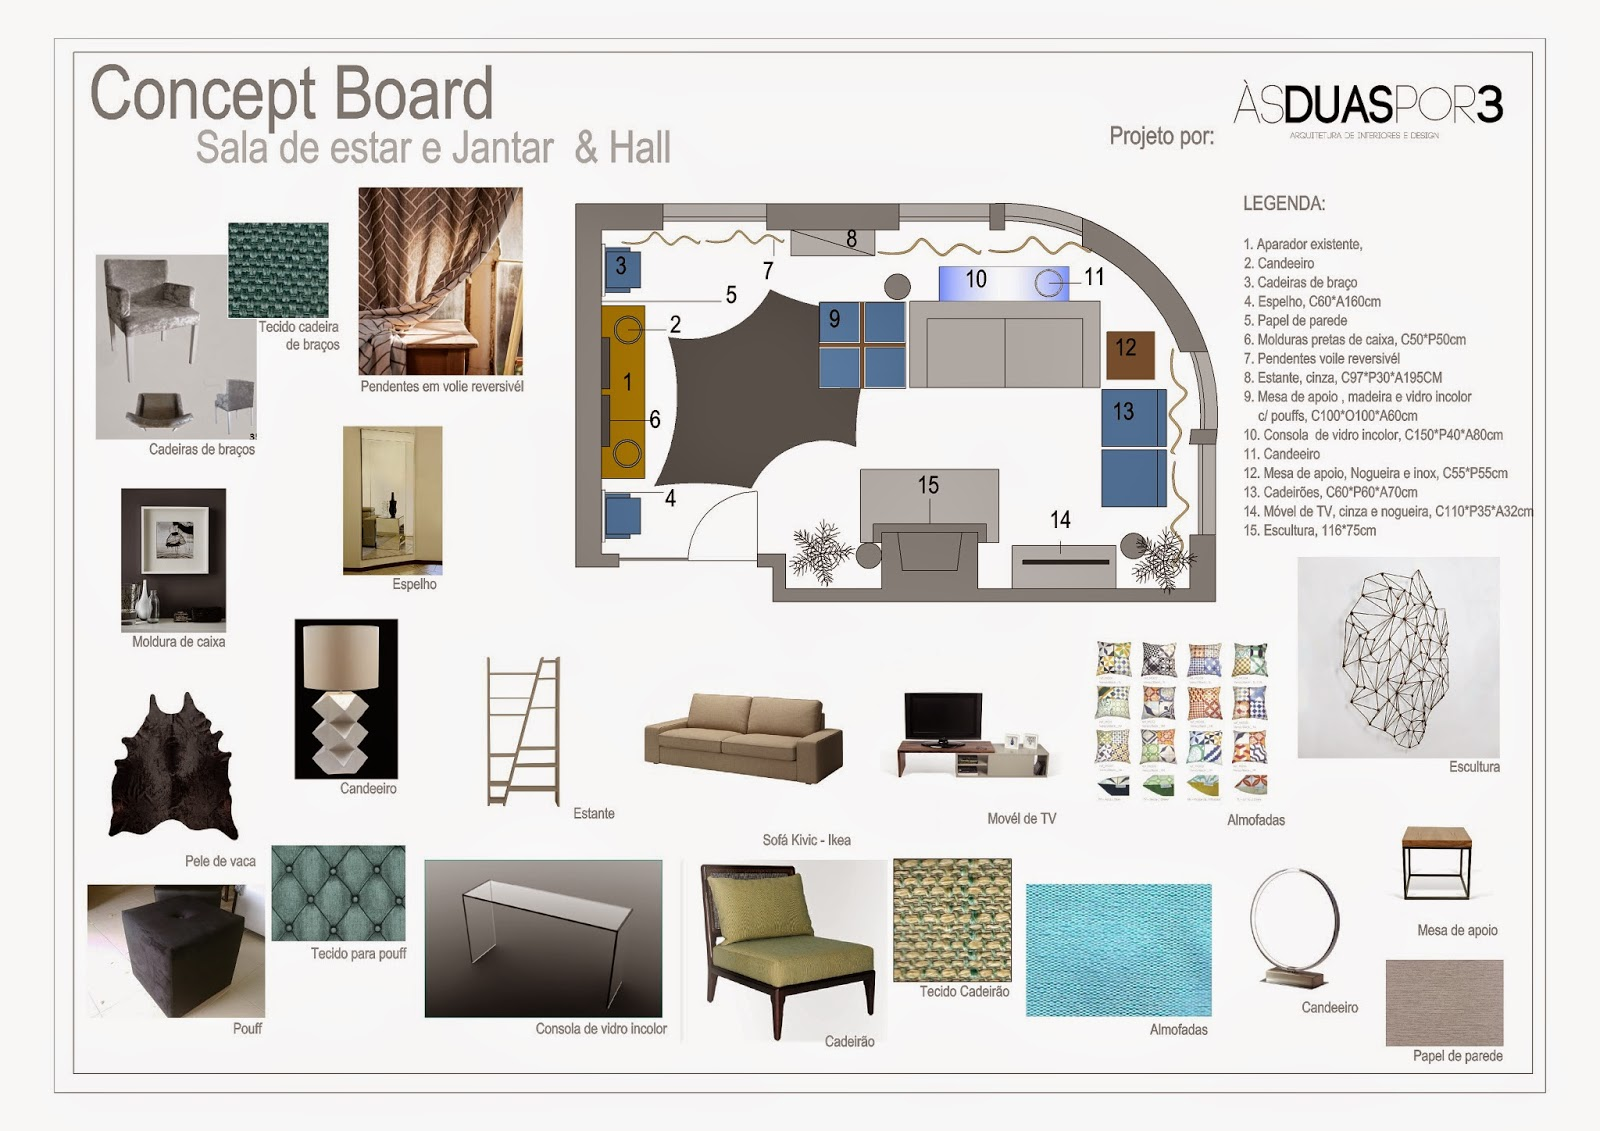 S duas por tr s arquitetura de interiores e decora o for Concept sheet for interior design